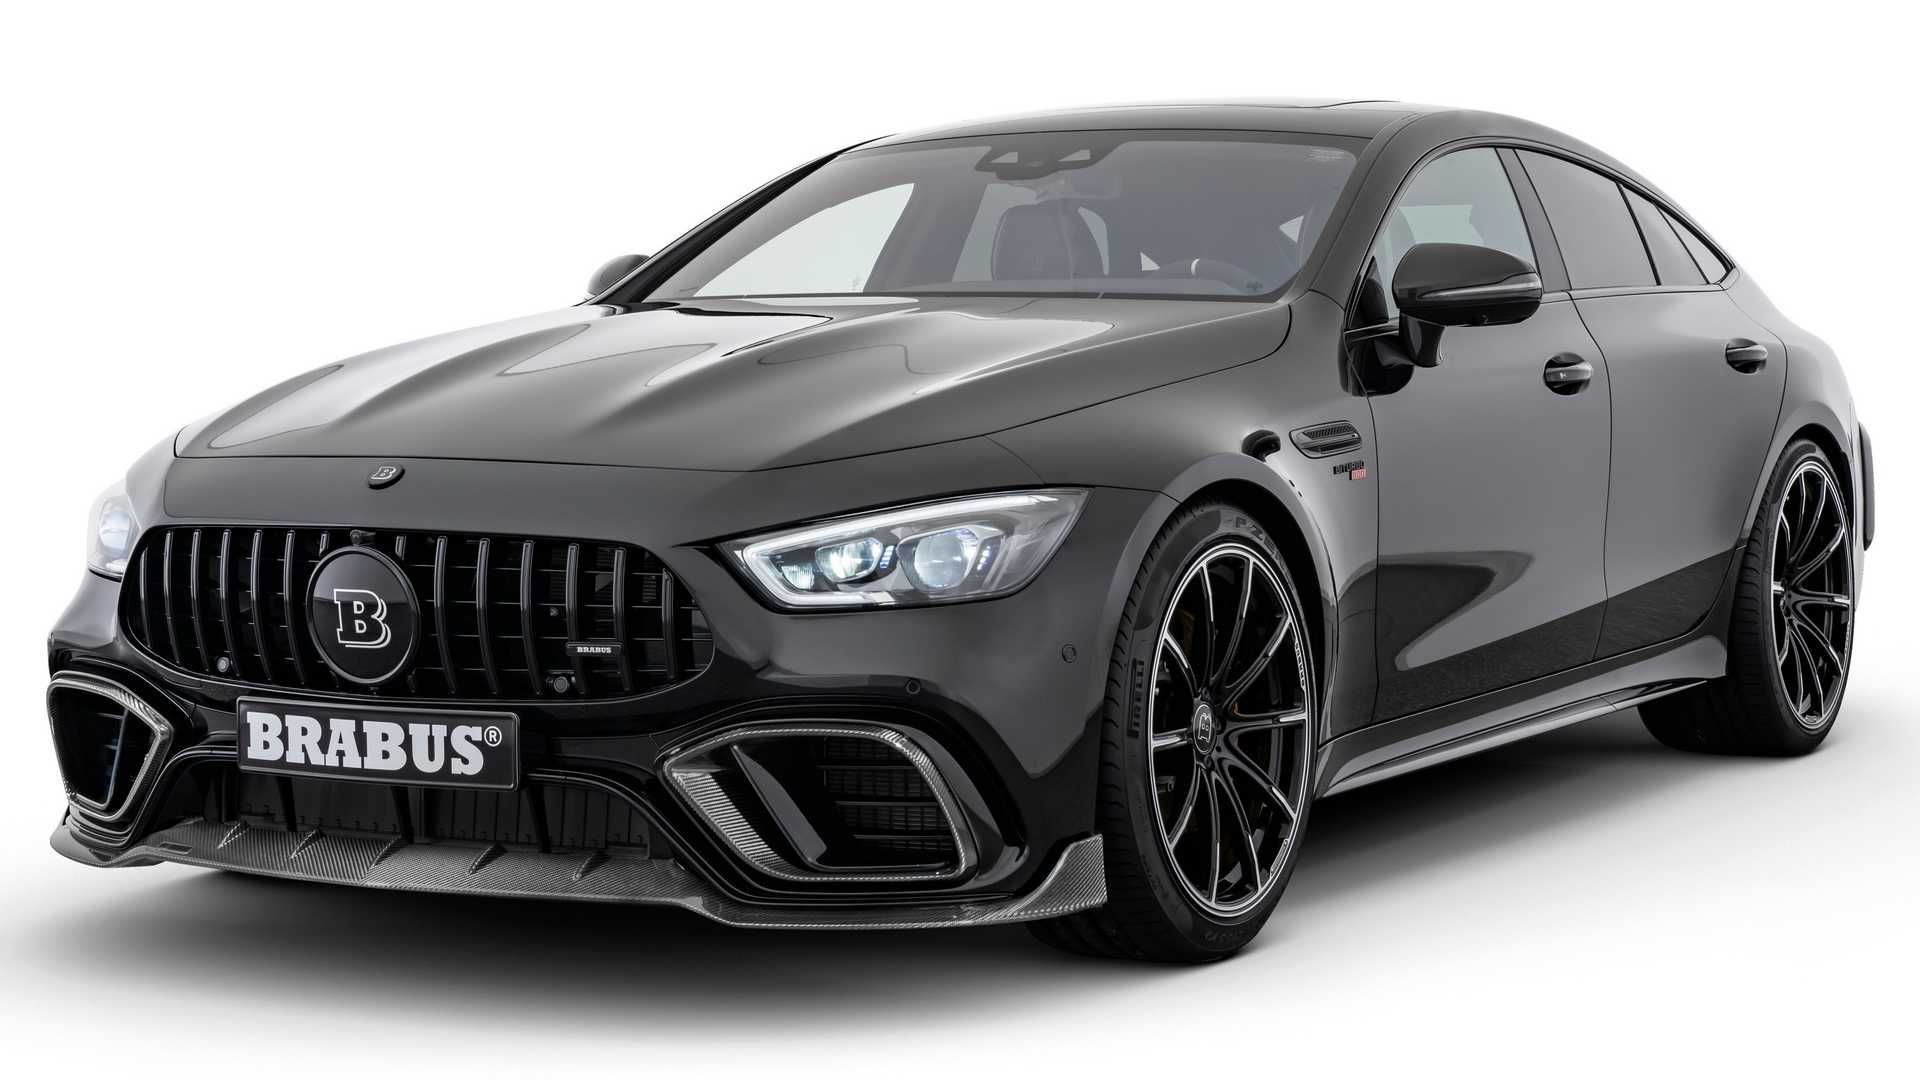 Brabus Mercedes Amg Gt 63 S 4 Door Coupe Packs Whopping 789 Hp